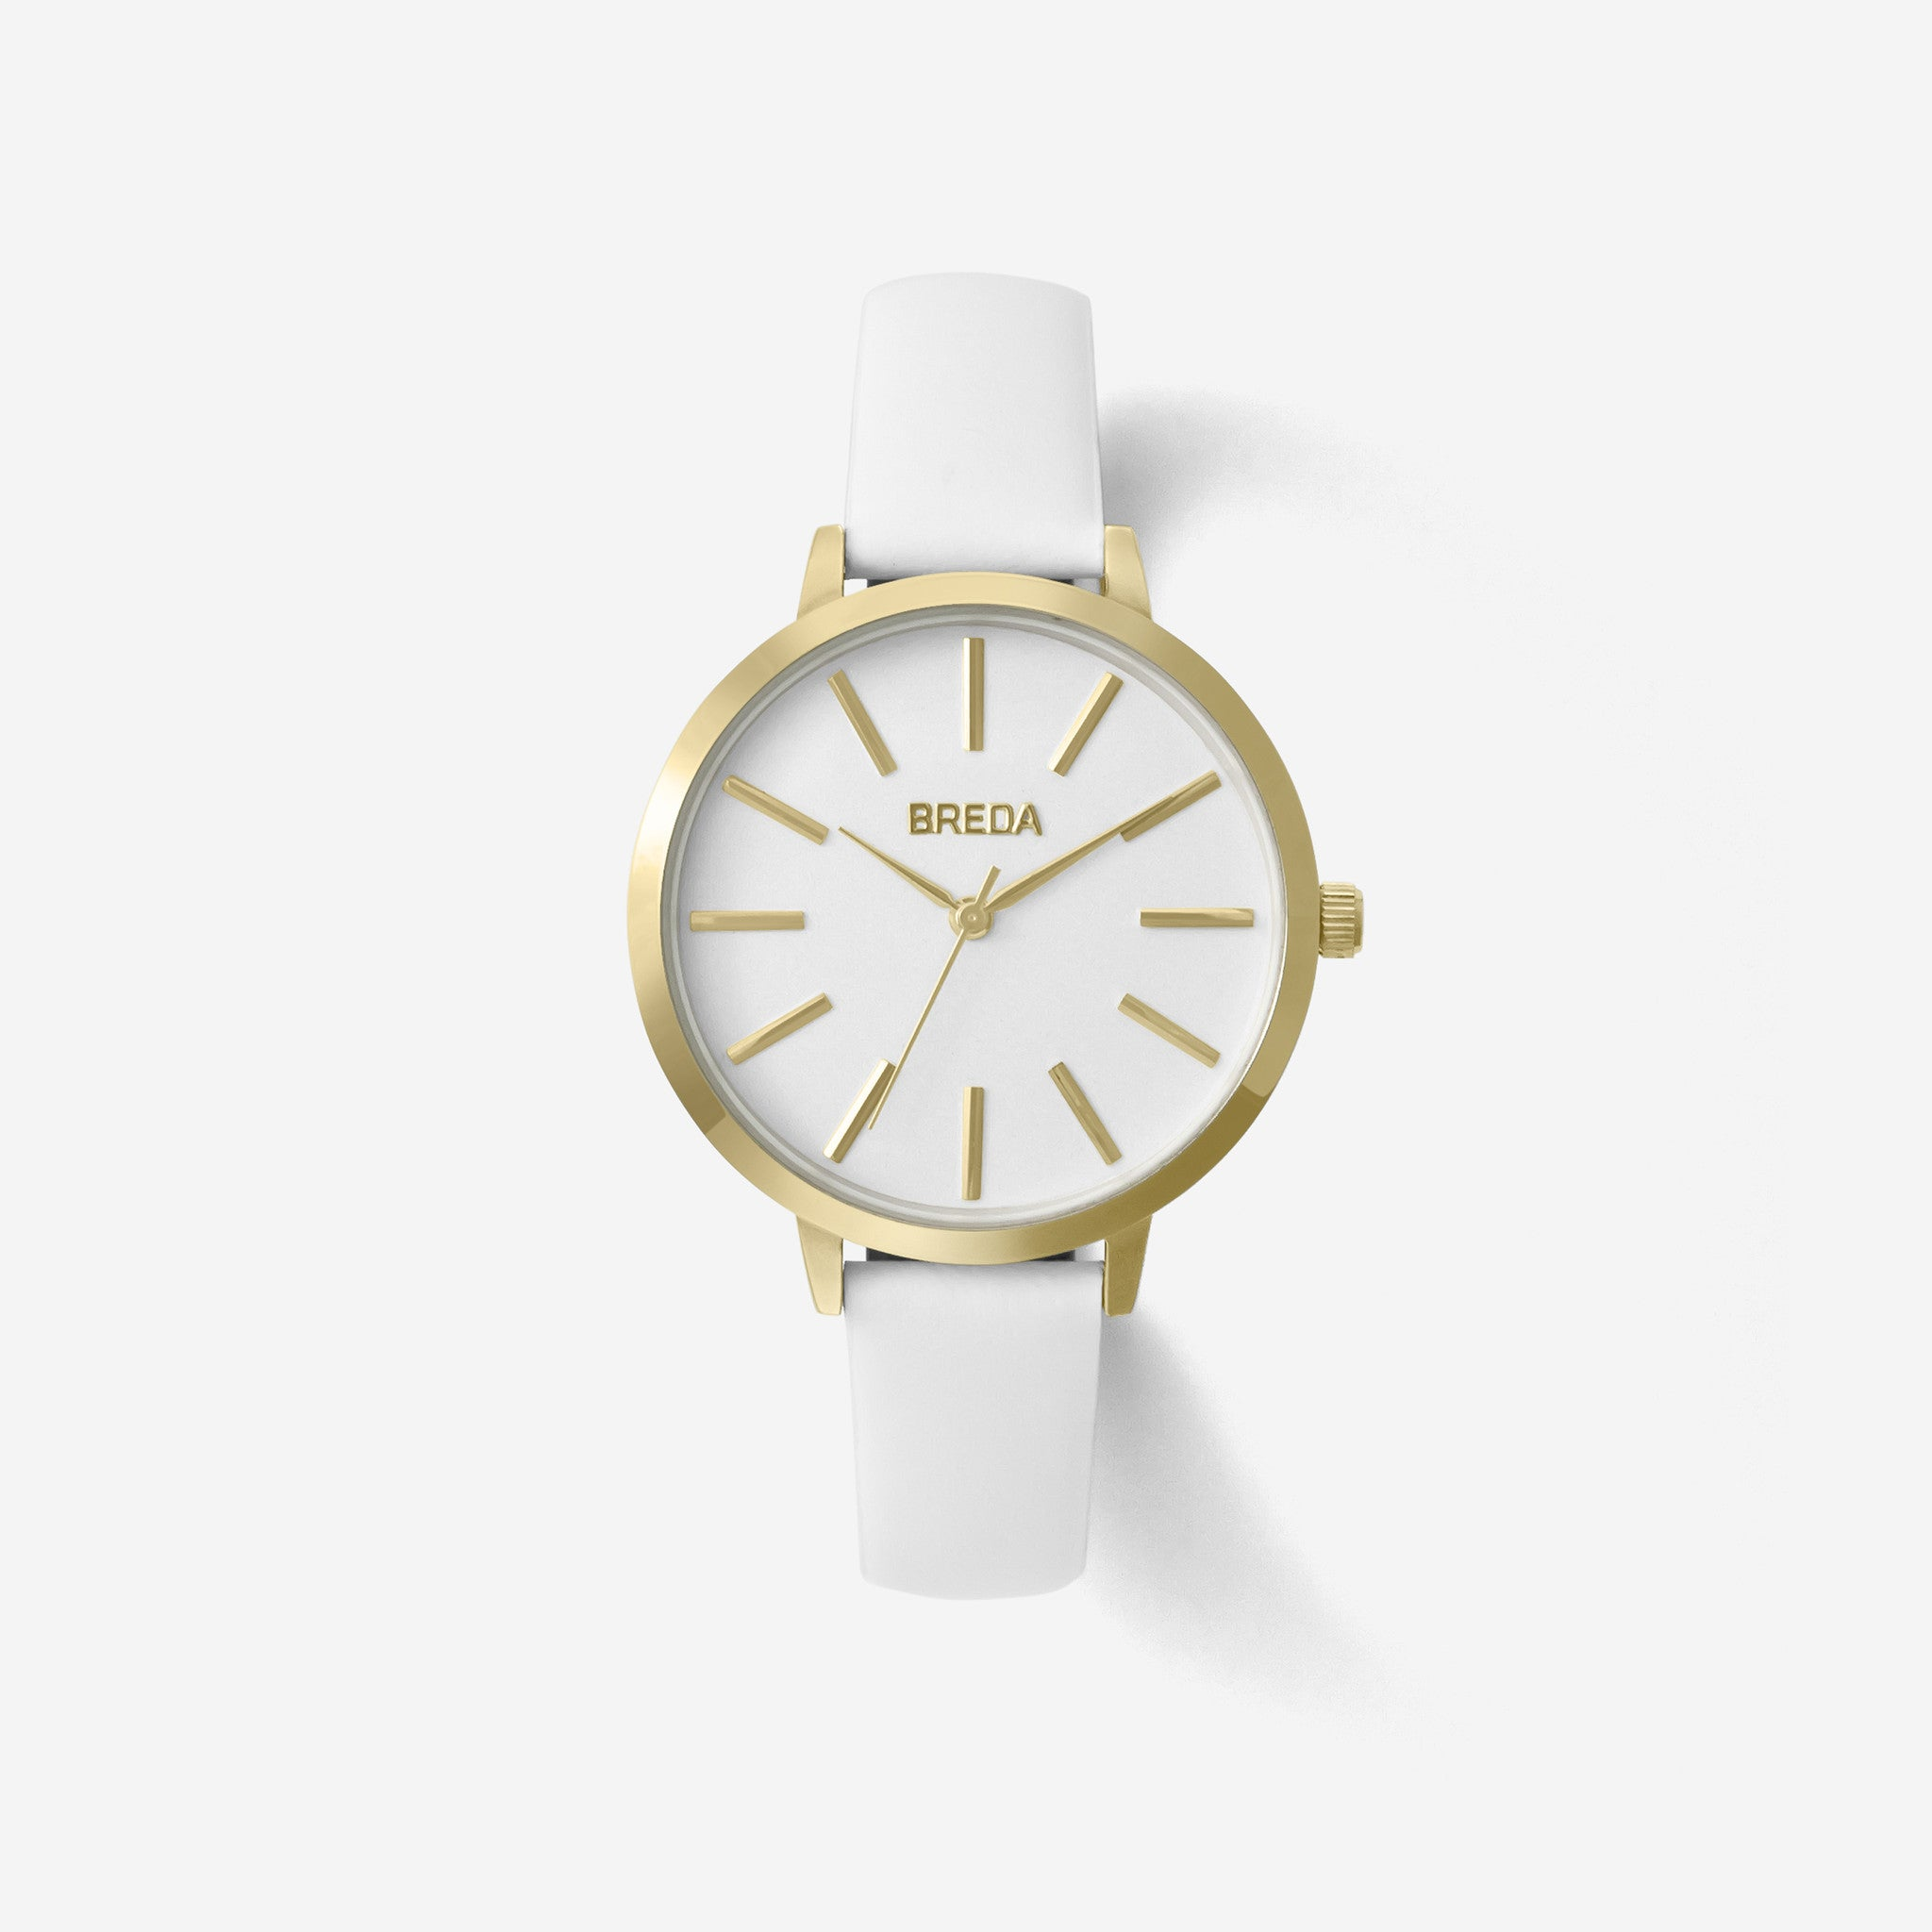 //cdn.shopify.com/s/files/1/0879/6650/products/breda-joule-1722c-gold-white-watch-front_1024x1024.jpg?v=1490812392